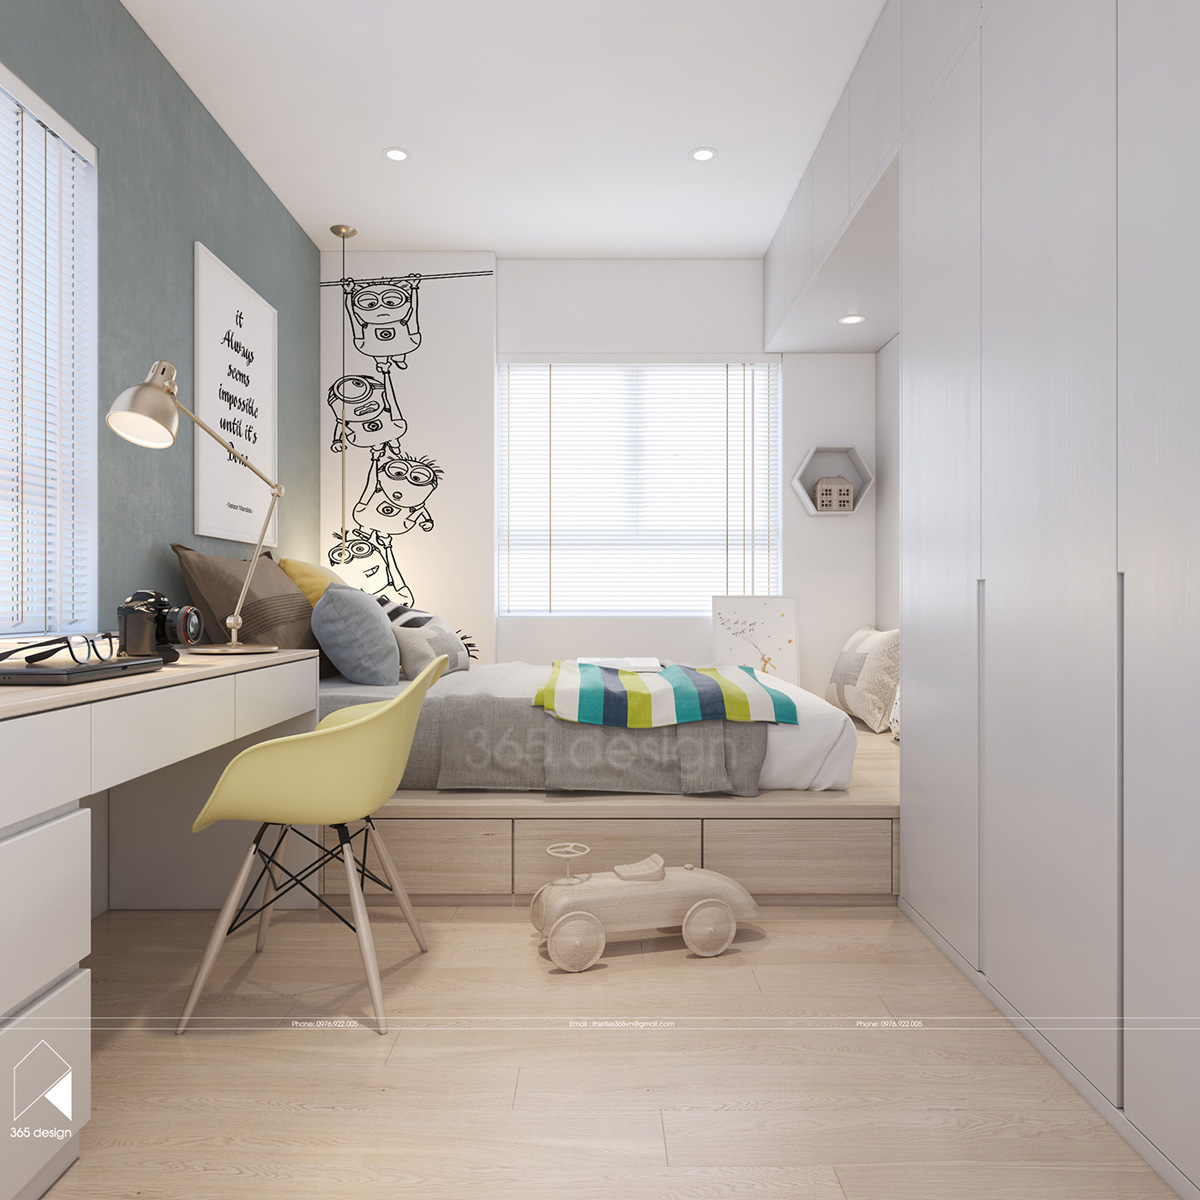 Modern Scandinavian Design for Home Interior Completed ... on Room Decor.  id=12527